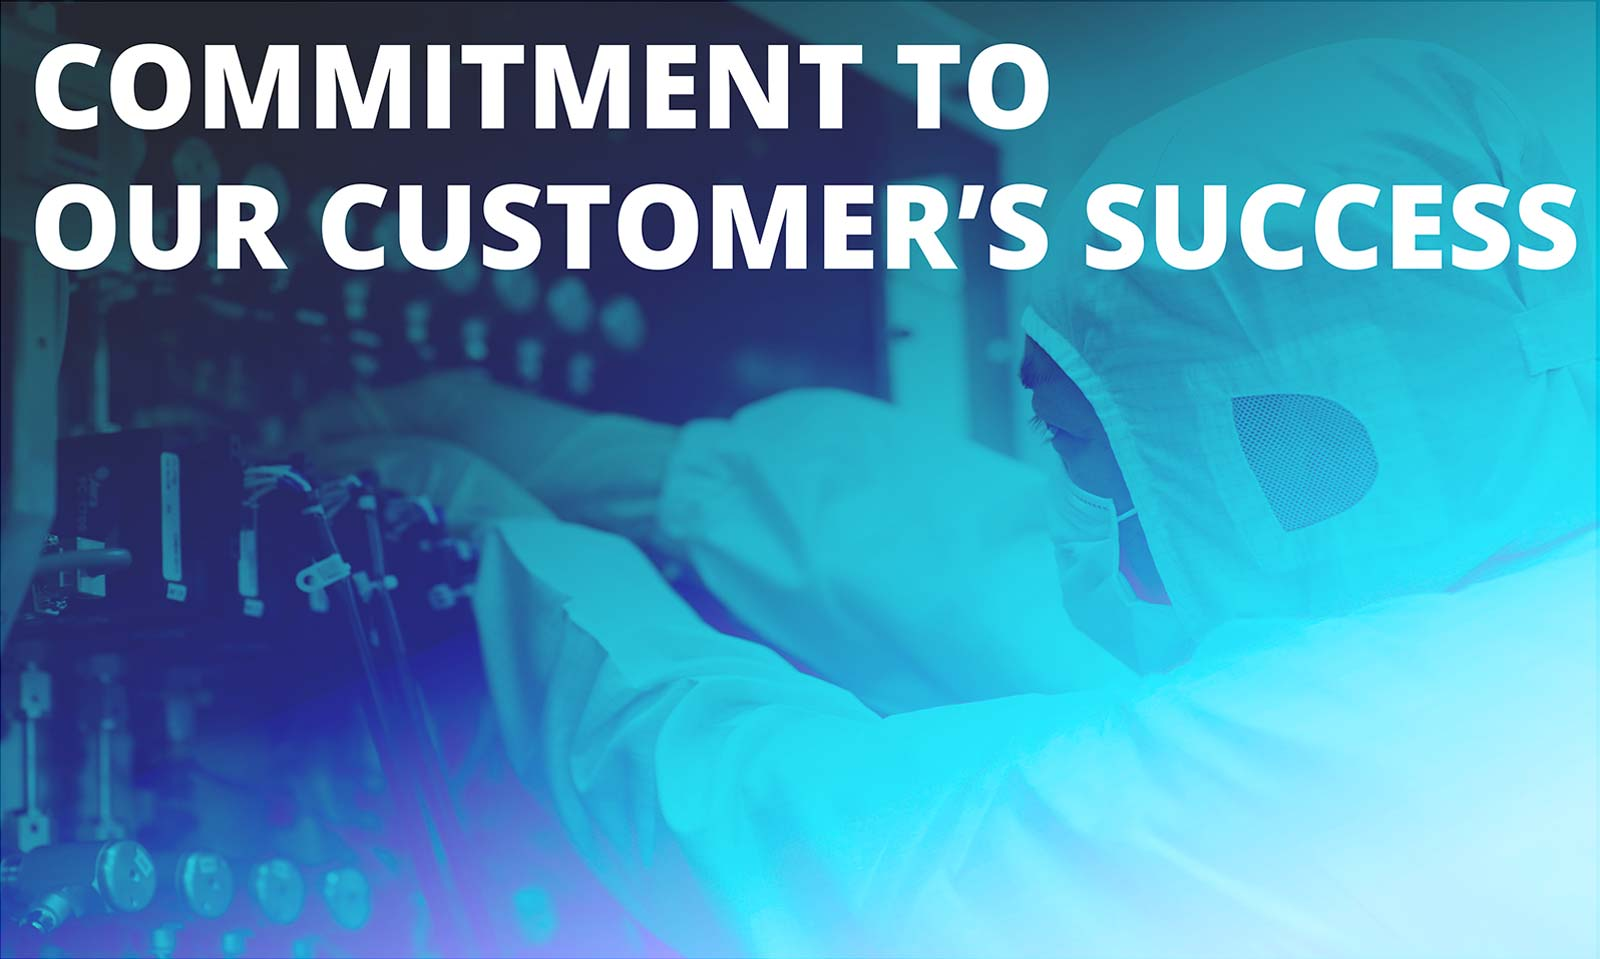 Commitment to our customer's success